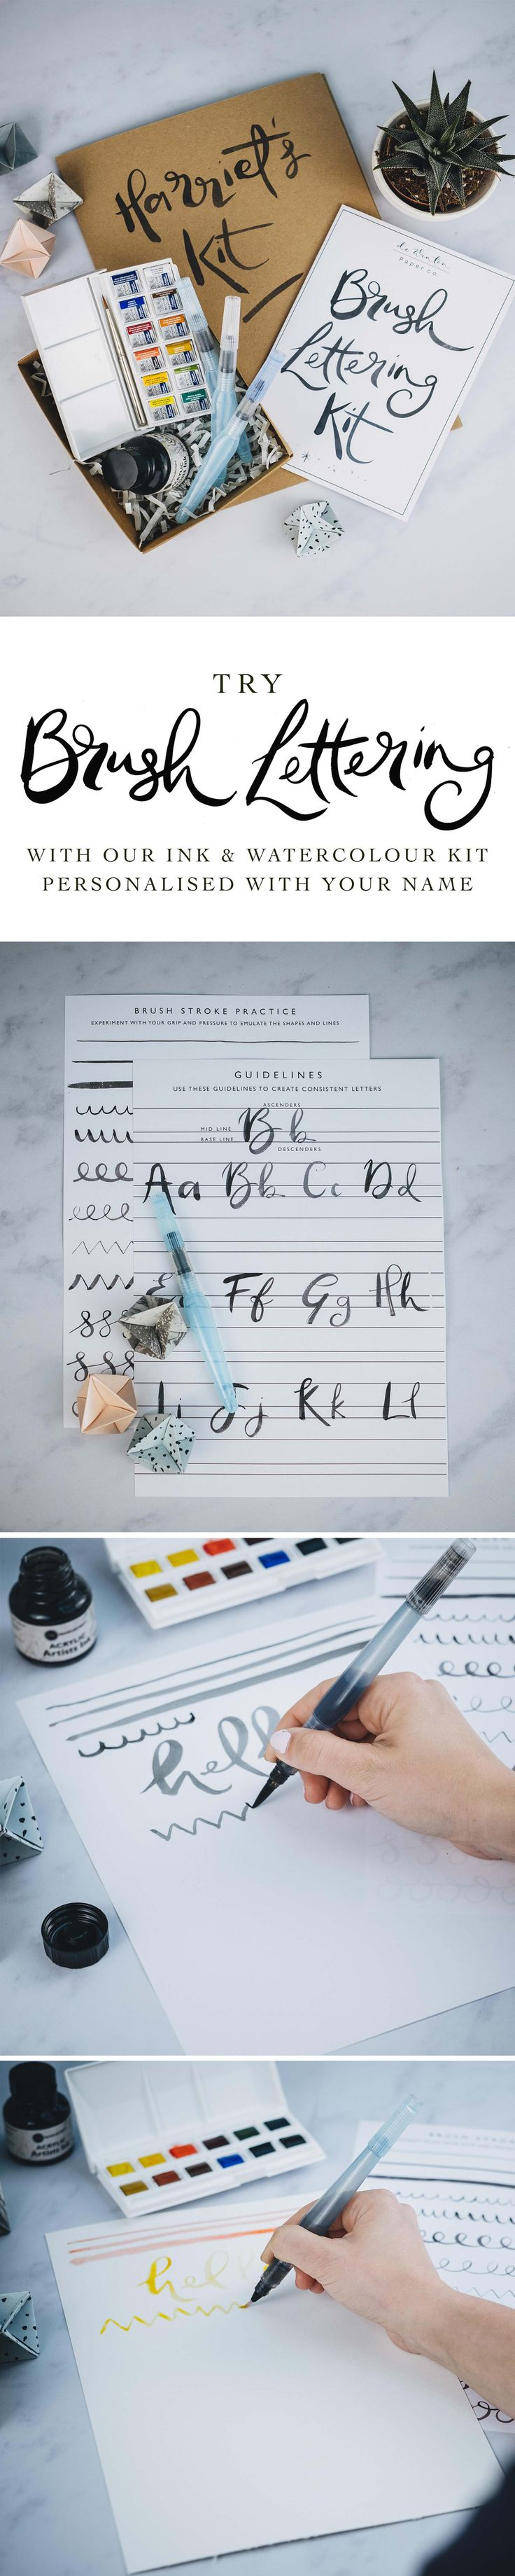 Brush up on your lettering skills with our personalised Brush Lettering Kit. Complete with 3 Pentel Aquash Brushes, Ink, Watercolours, guide booklet, worksheets and practice paper. Available in our Not on the High Street Store.